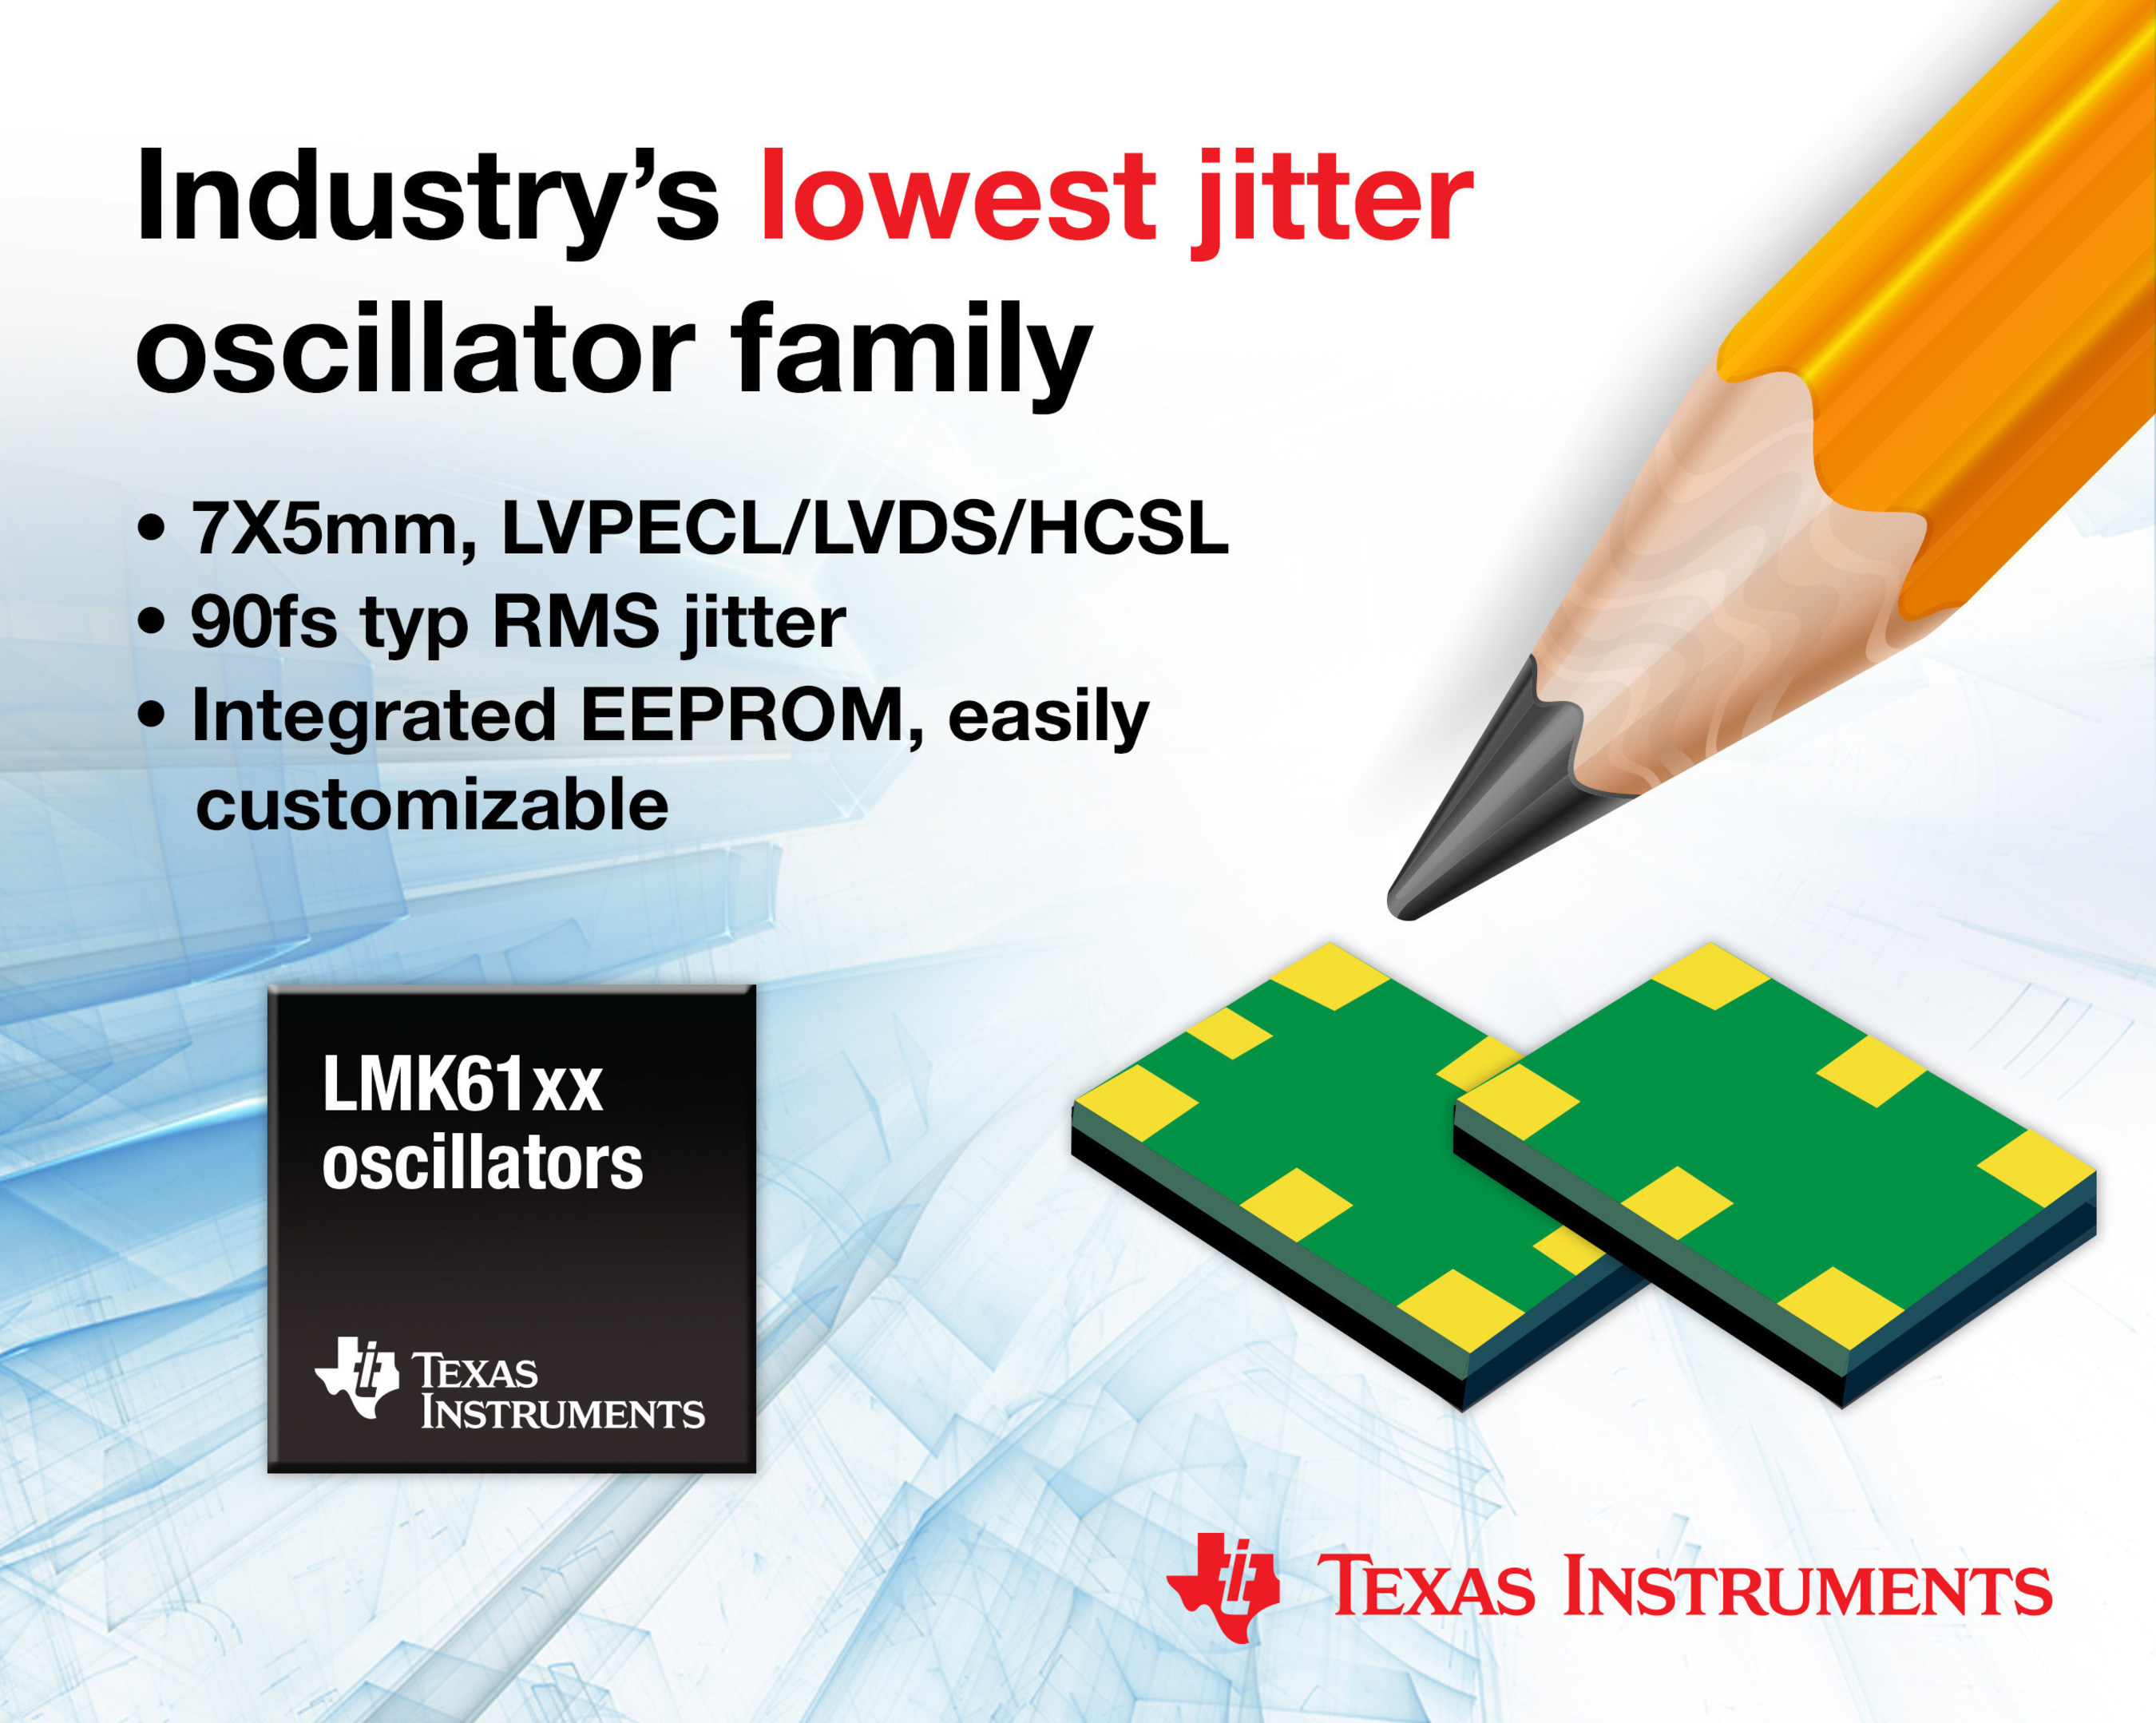 TI's new oscillator family offers the industry's lowest jitter to optimize signal integrity in performance-critical applications